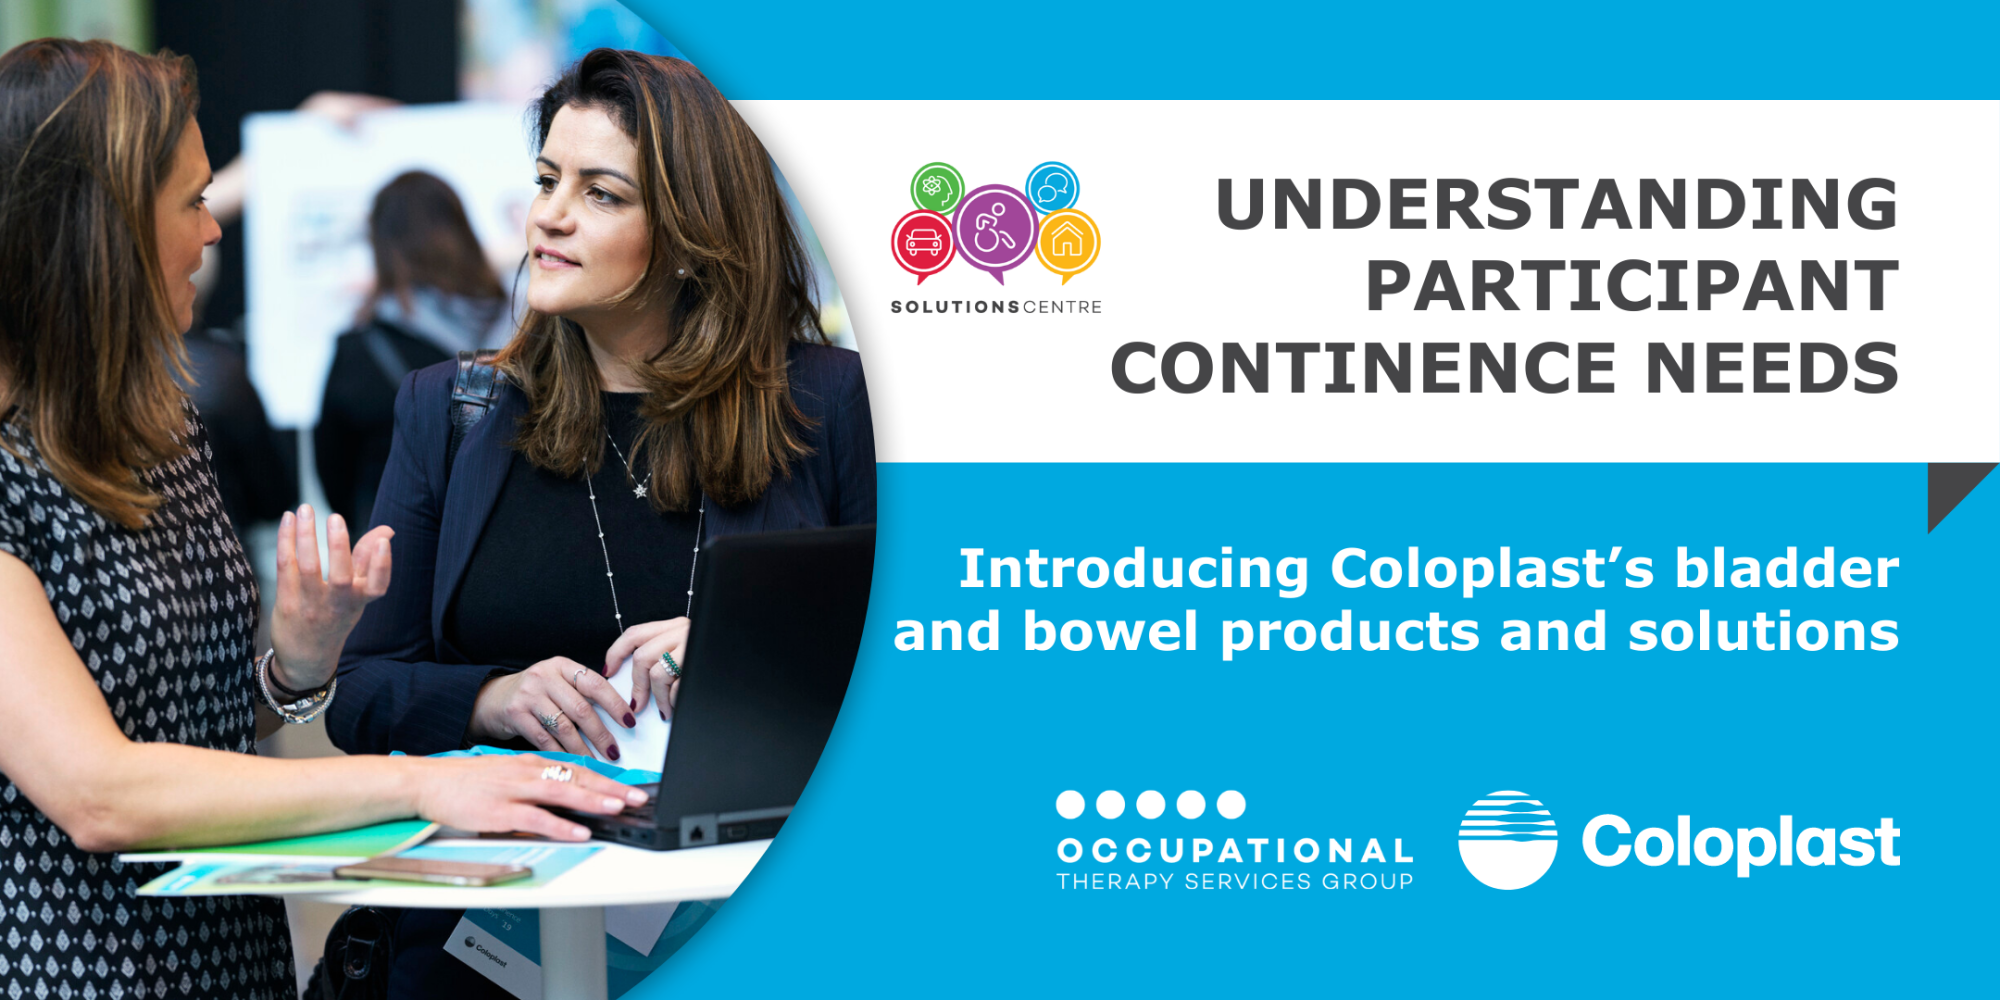 UNDERSTANDING PARTICIPANT CONTINENCE NEEDS